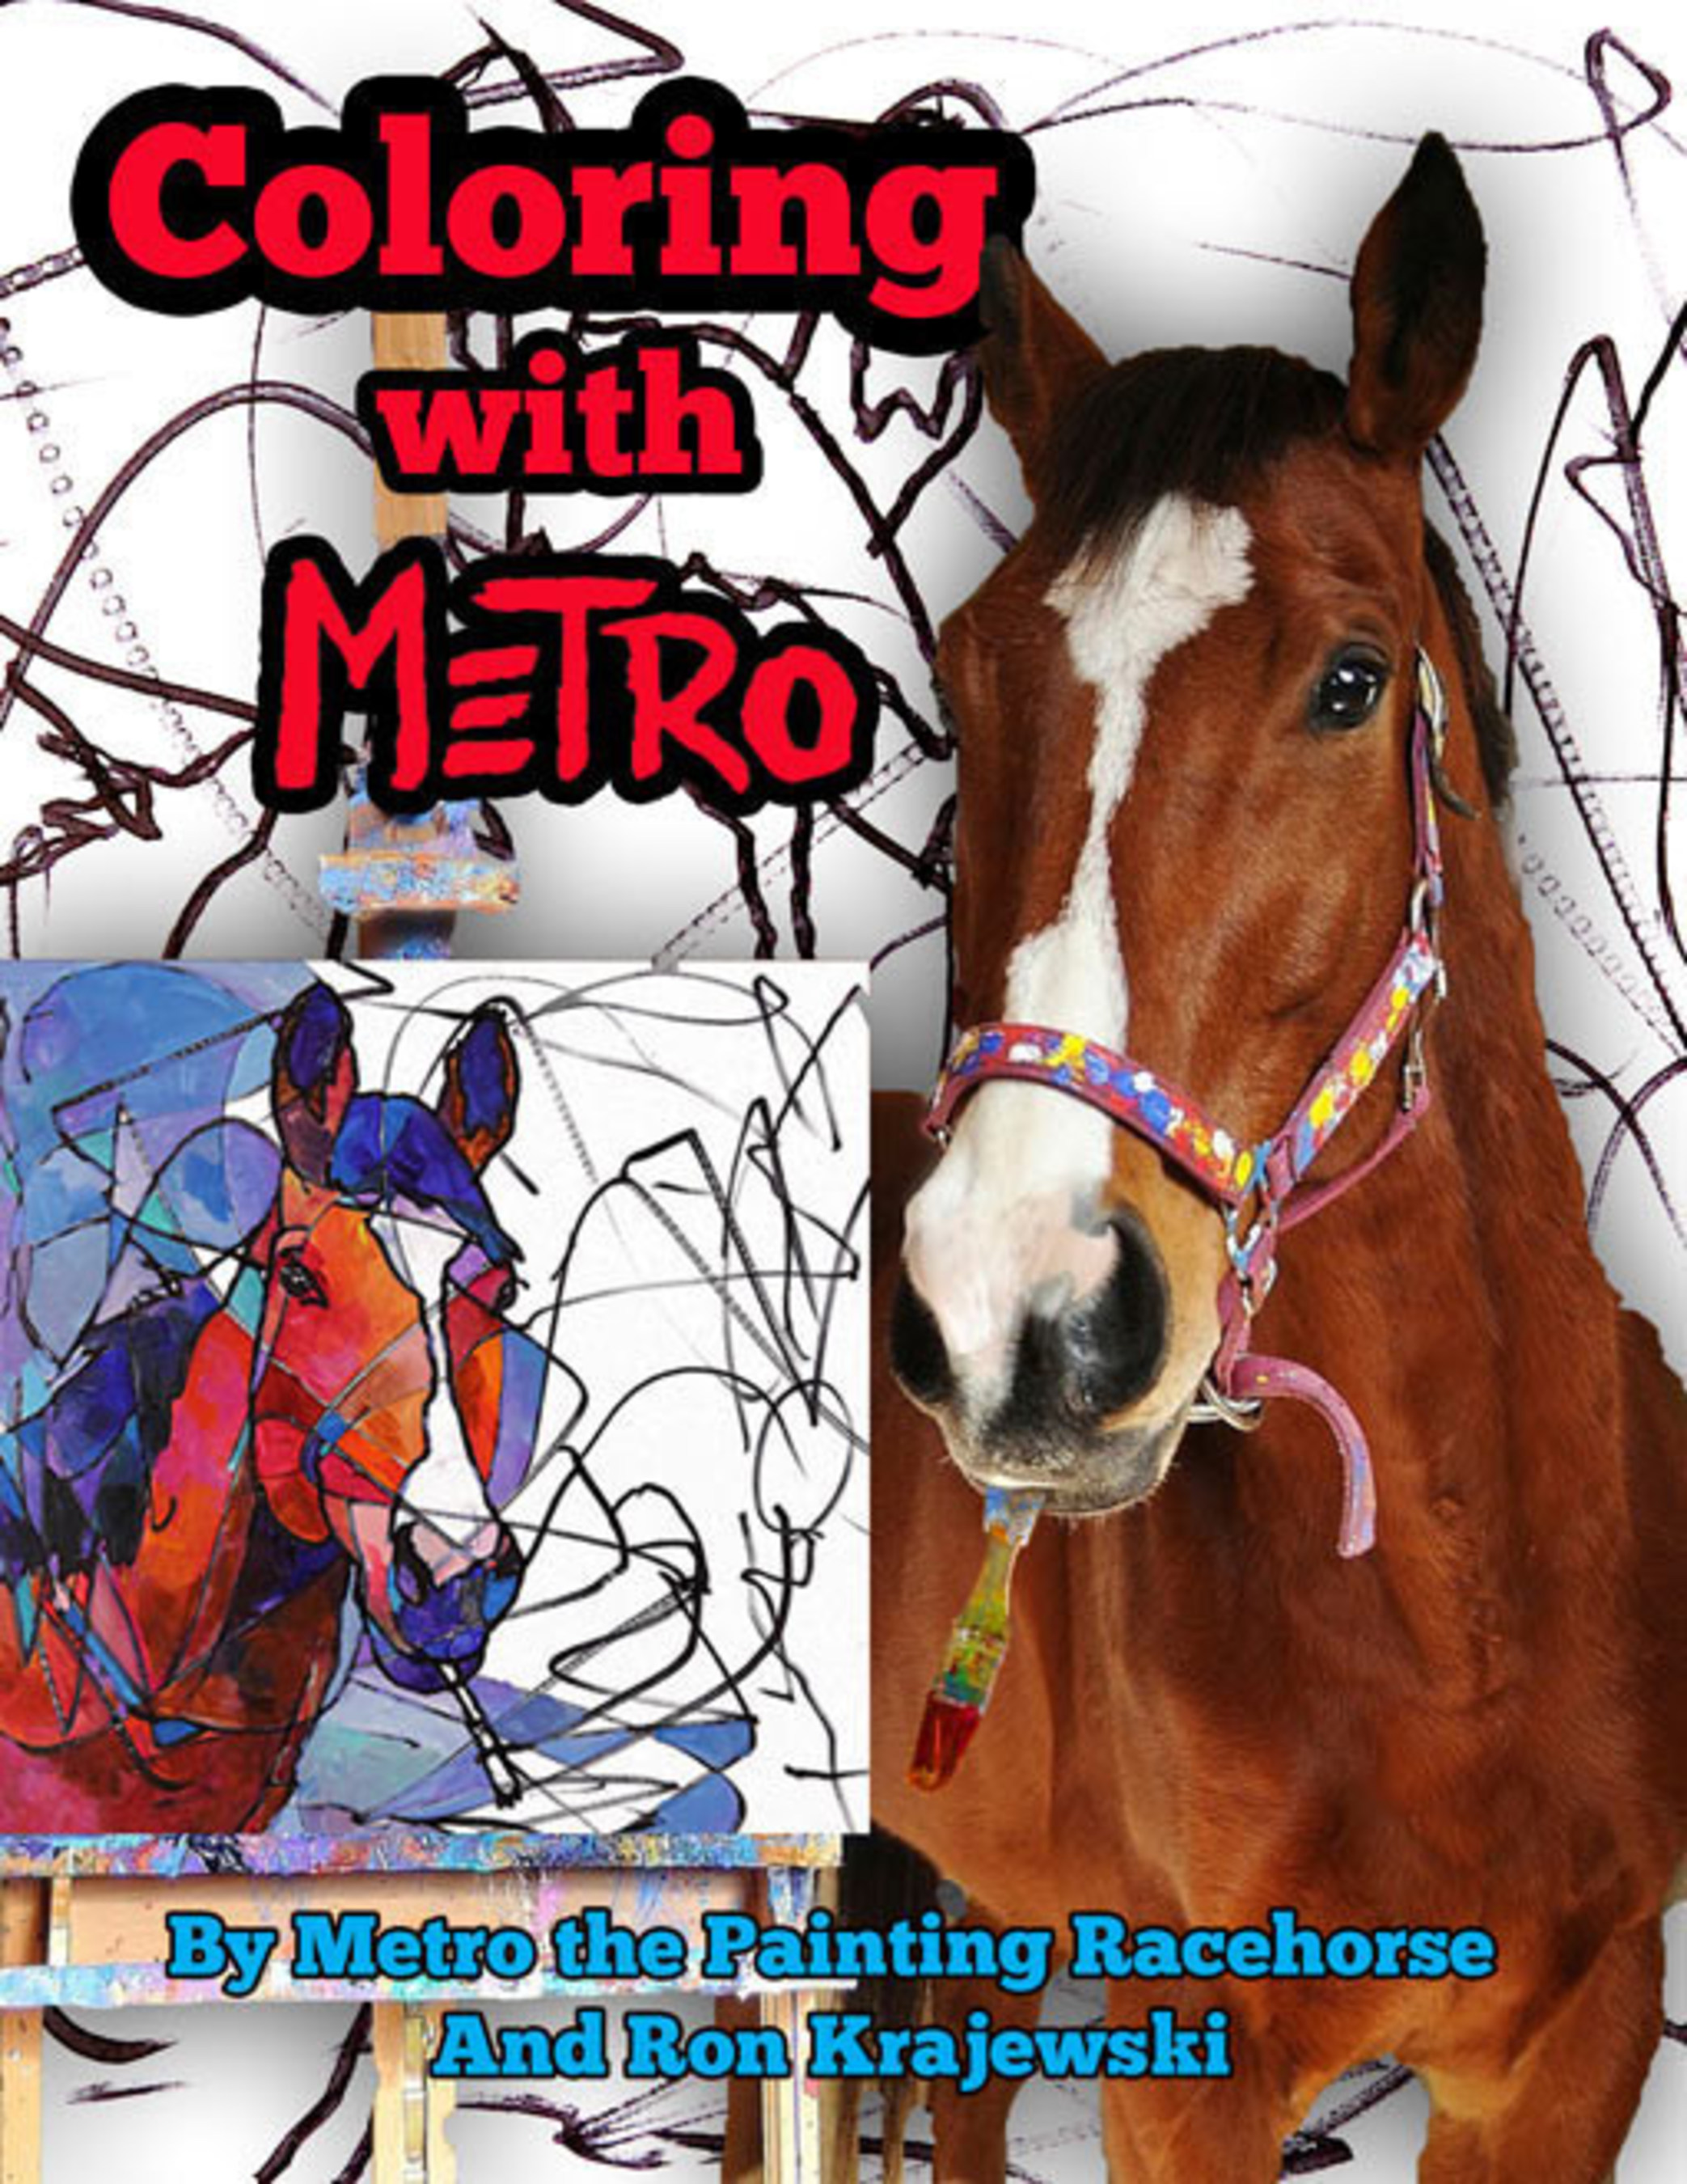 Pen in teeth, Metro the Painting Racehorse autographs his new, original coloring book